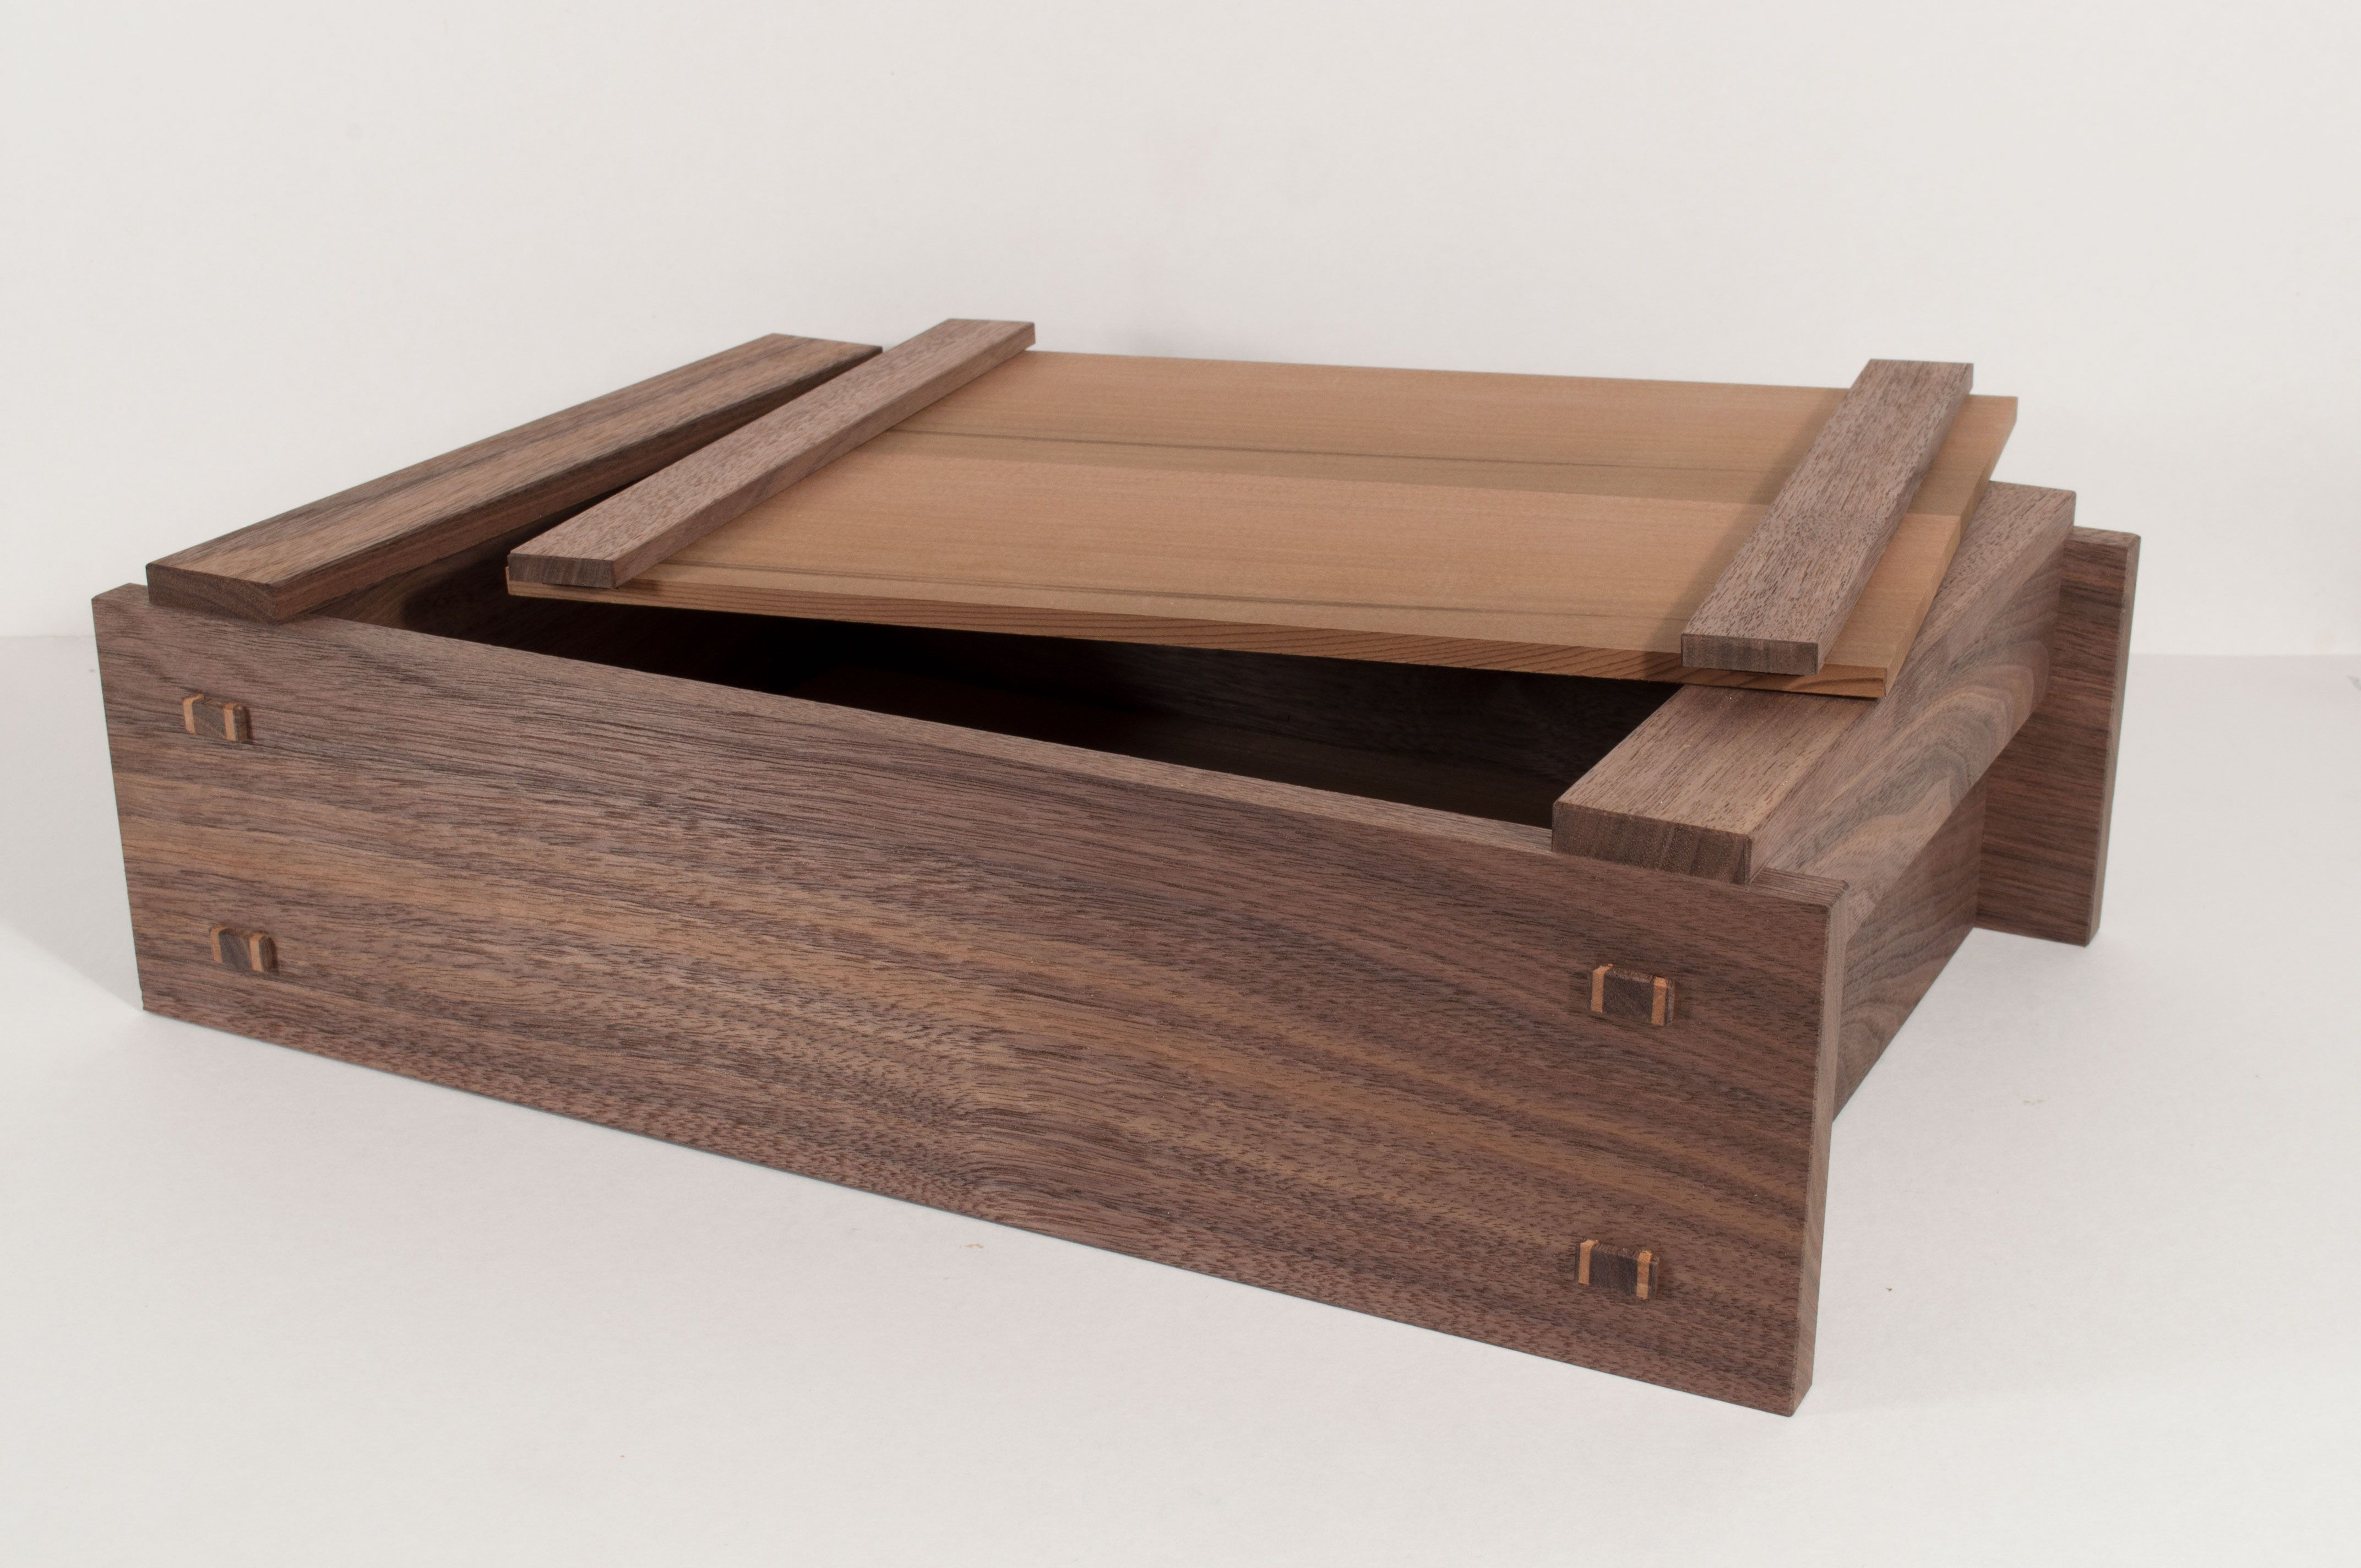 Japanese Boxes Keepsake Boxes Styled After Traditional